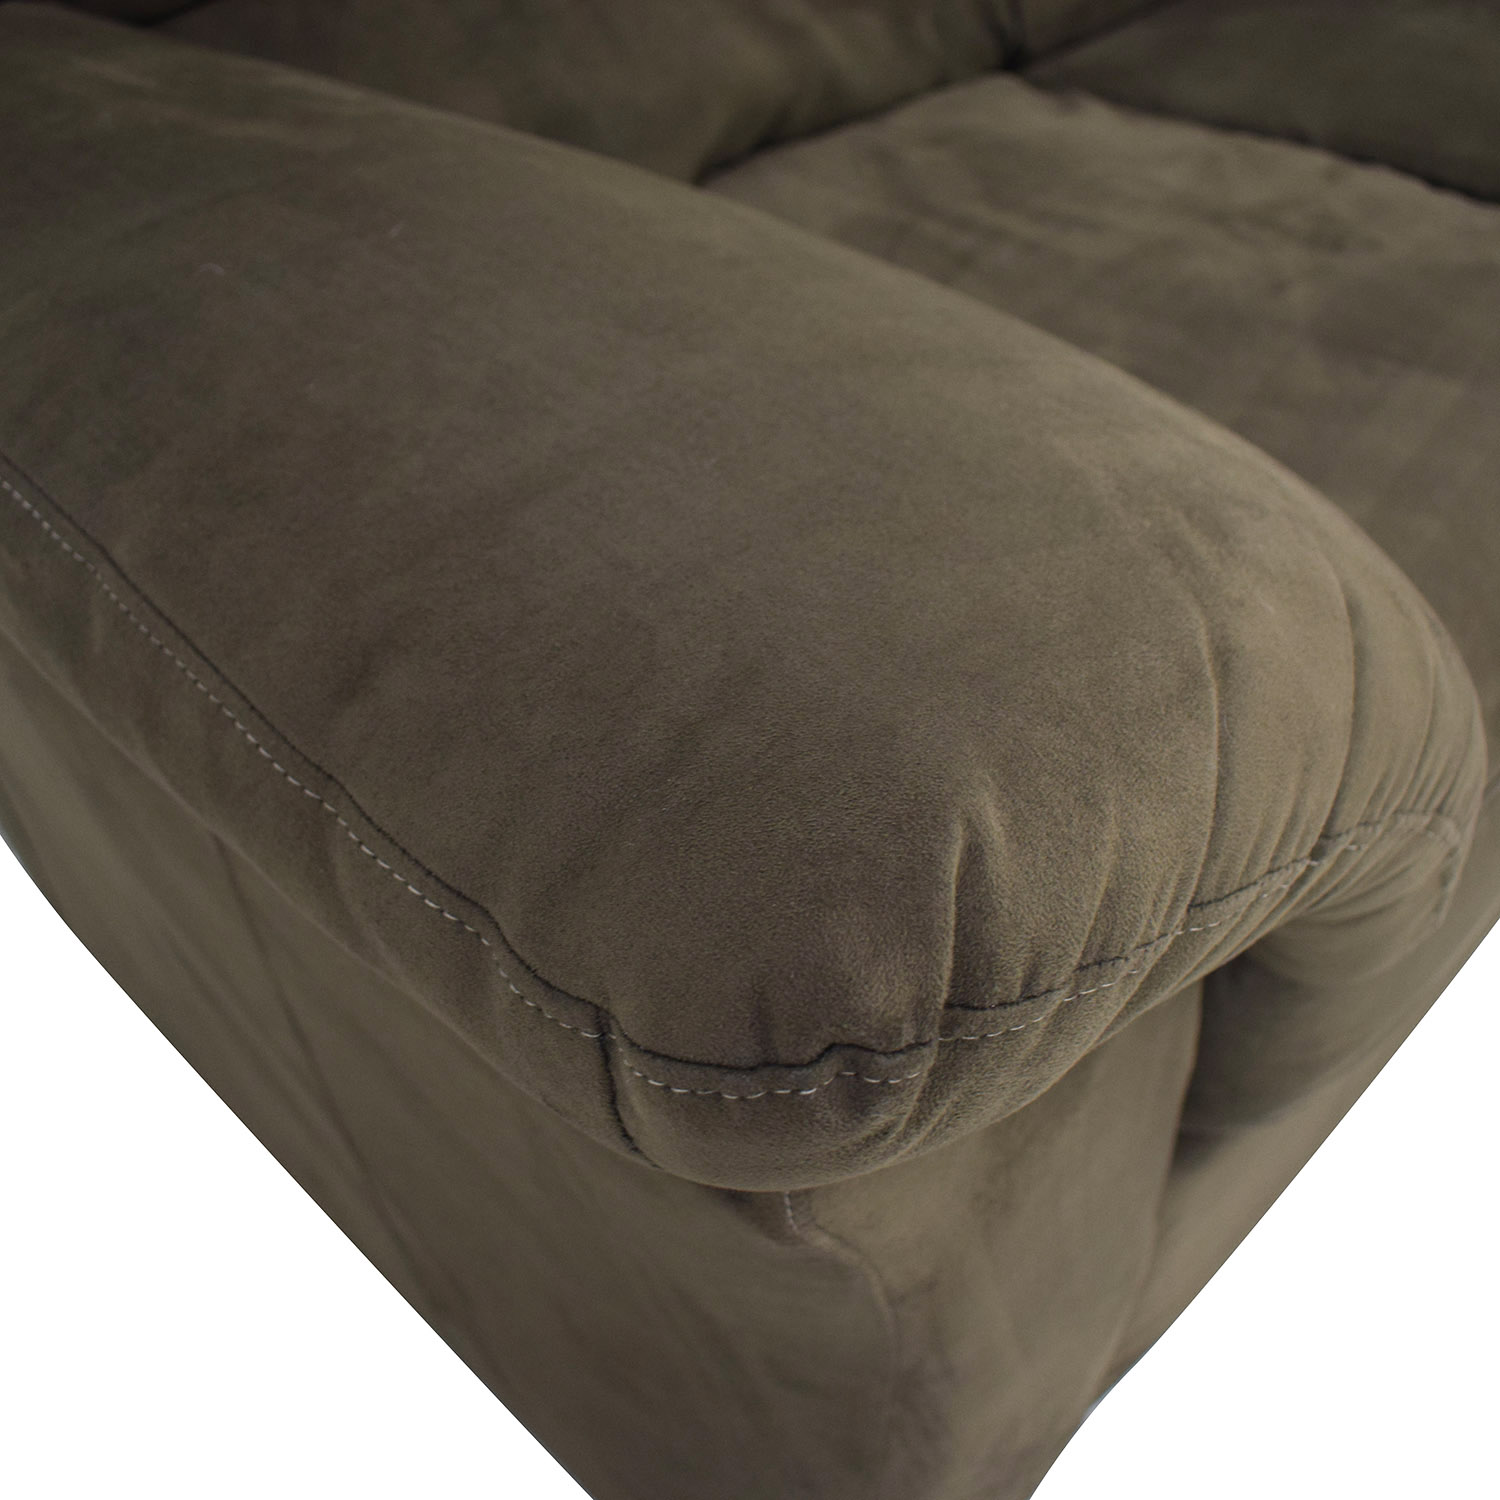 HM Richards Furniture HM Richards Furniture Dark Green Couch Classic Sofas